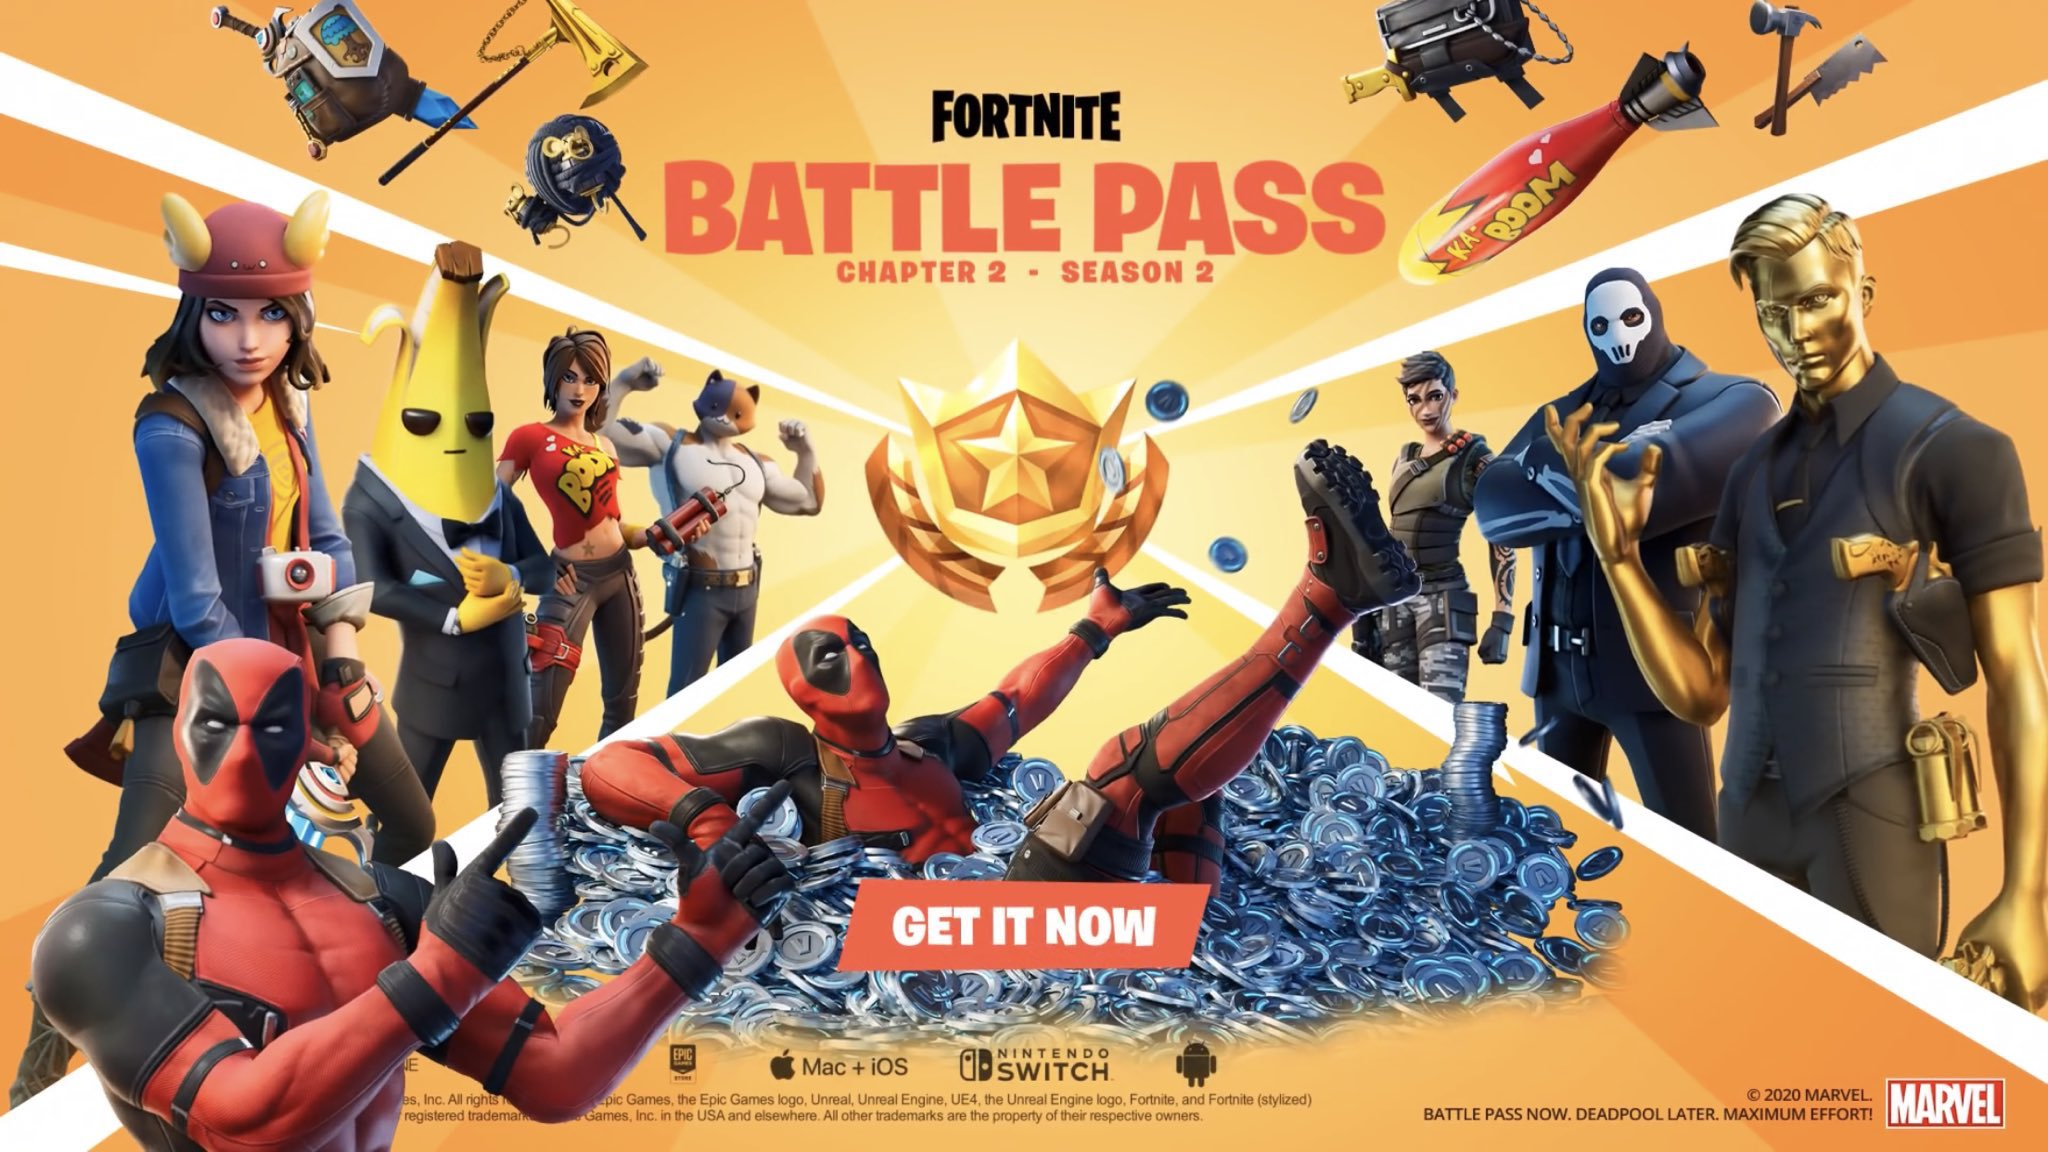 """Fortnite launched its second season of its second chapter Thursday, revealing a new theme centered around spies, agents and a """"takeover"""" of the island."""